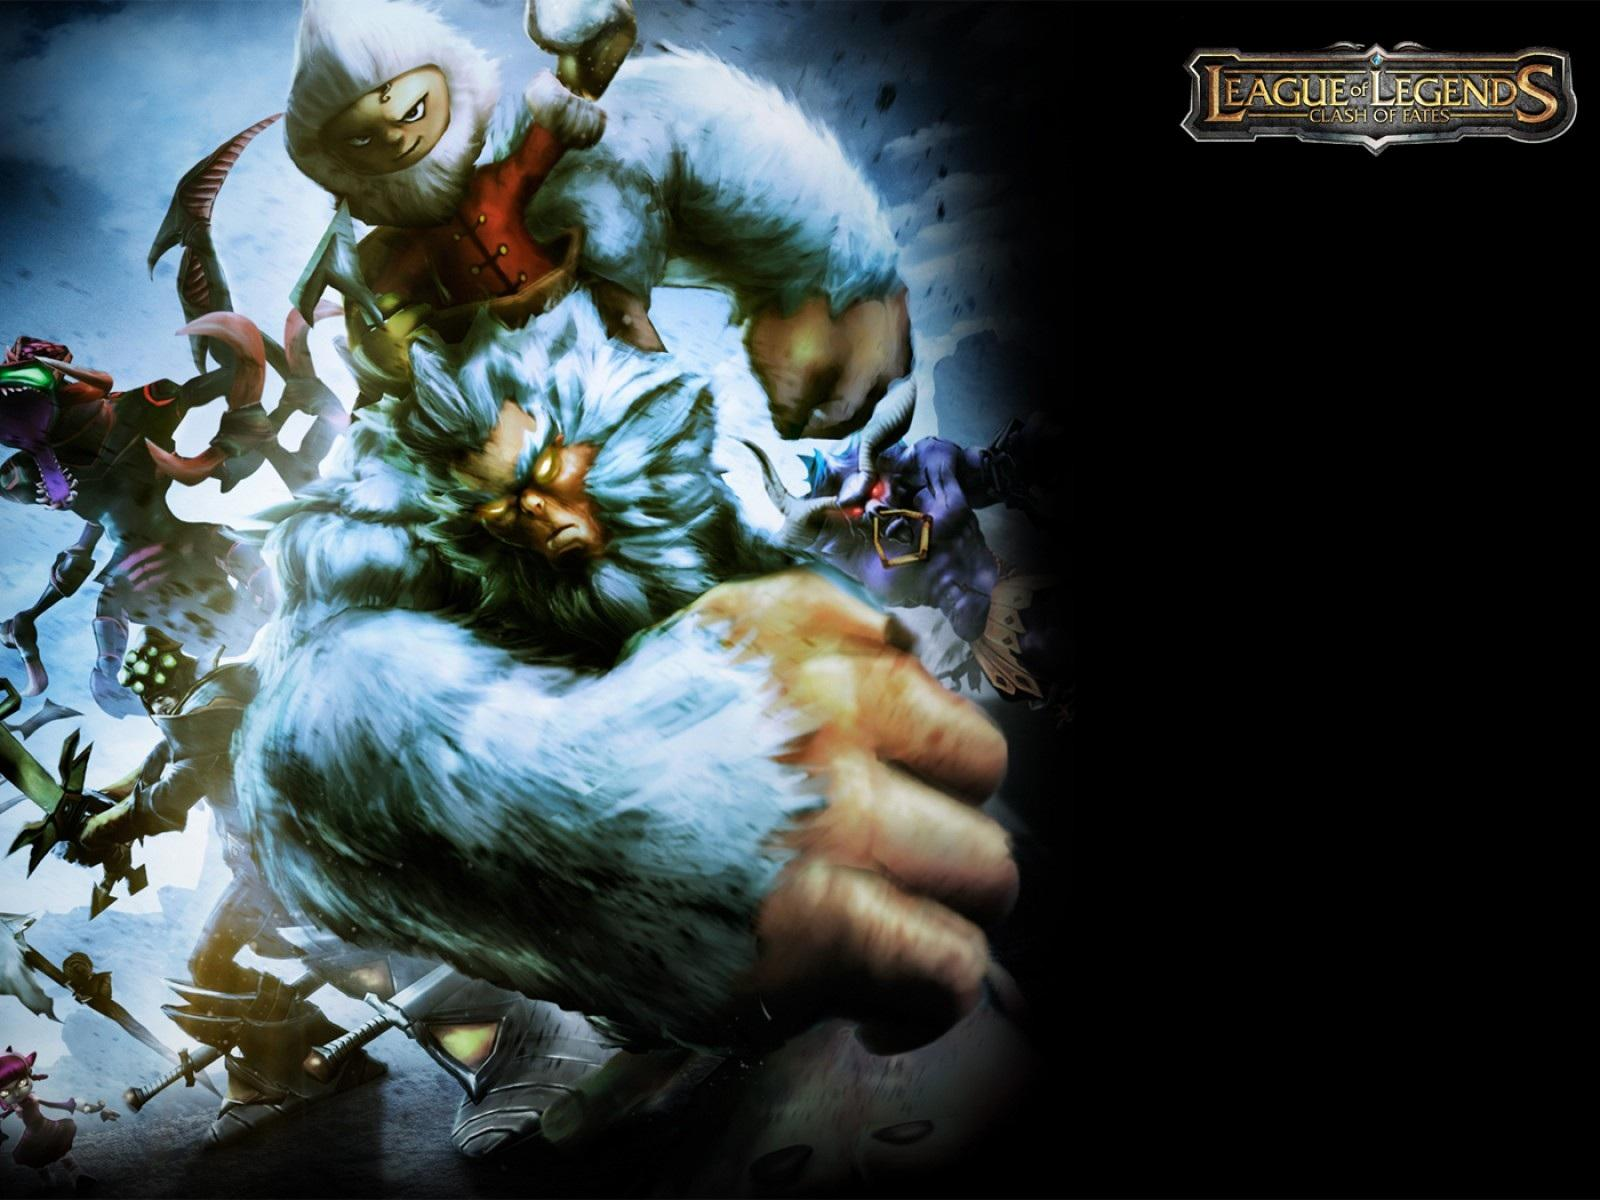 Обои League of Legends: Clash of Fates 1600x1200